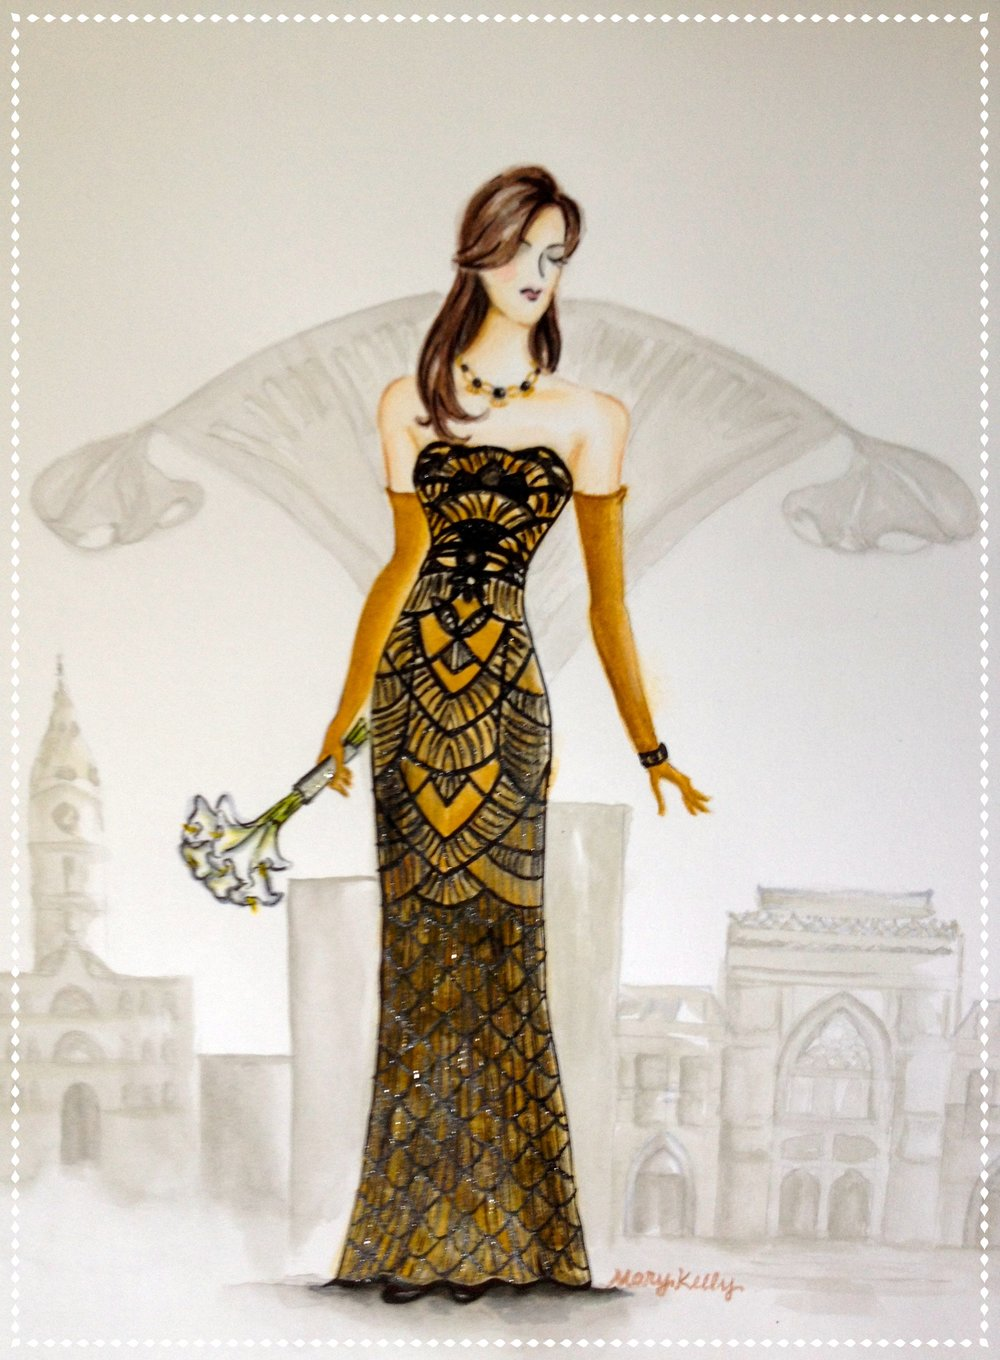 Lauren's art deco gown